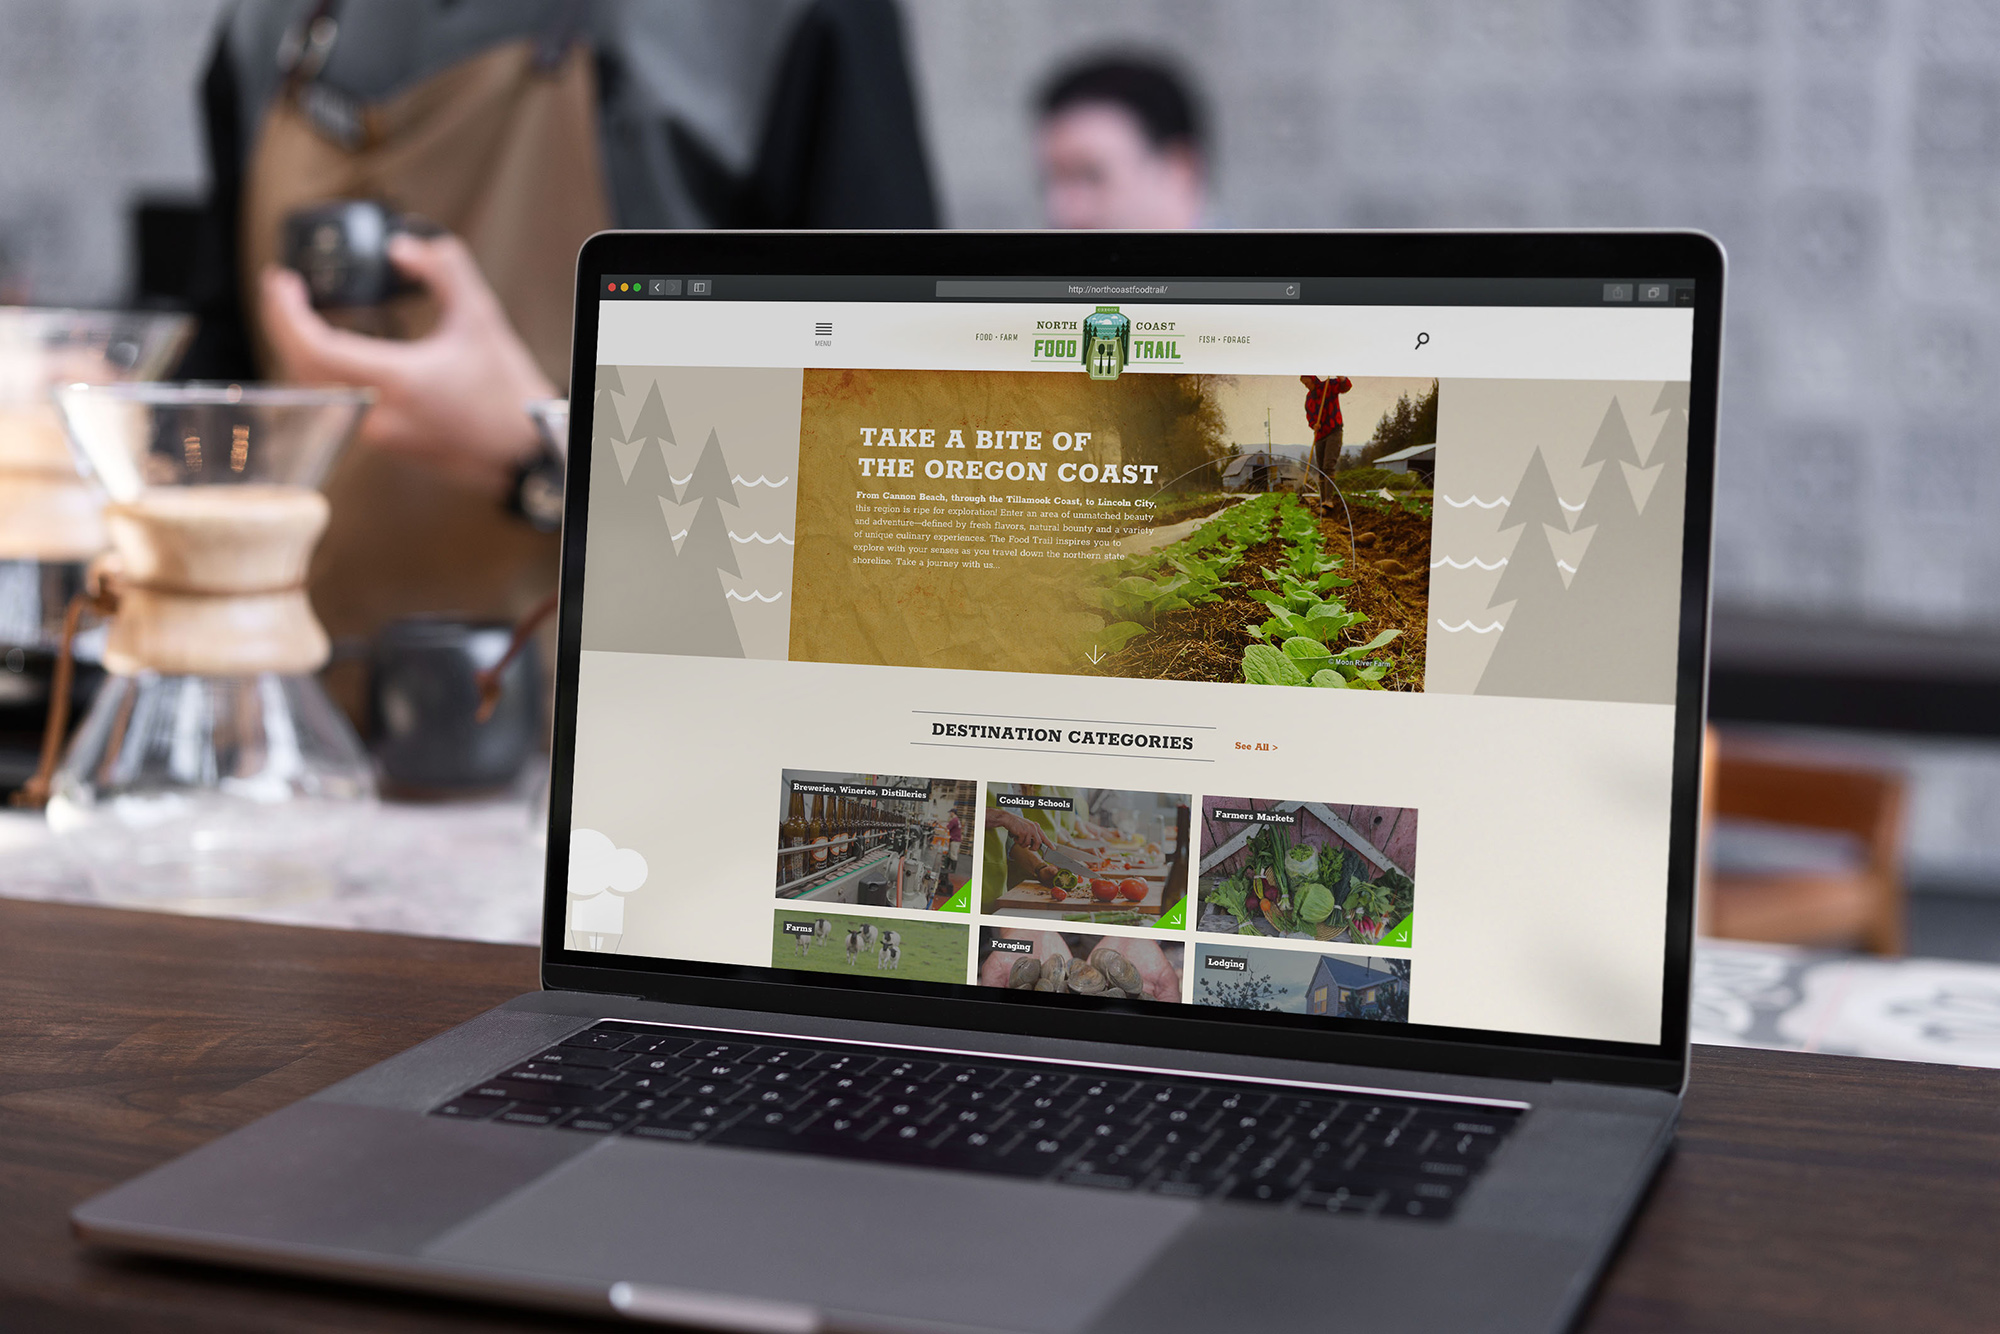 Branding and Web Design for the Travel and Tourism Industry